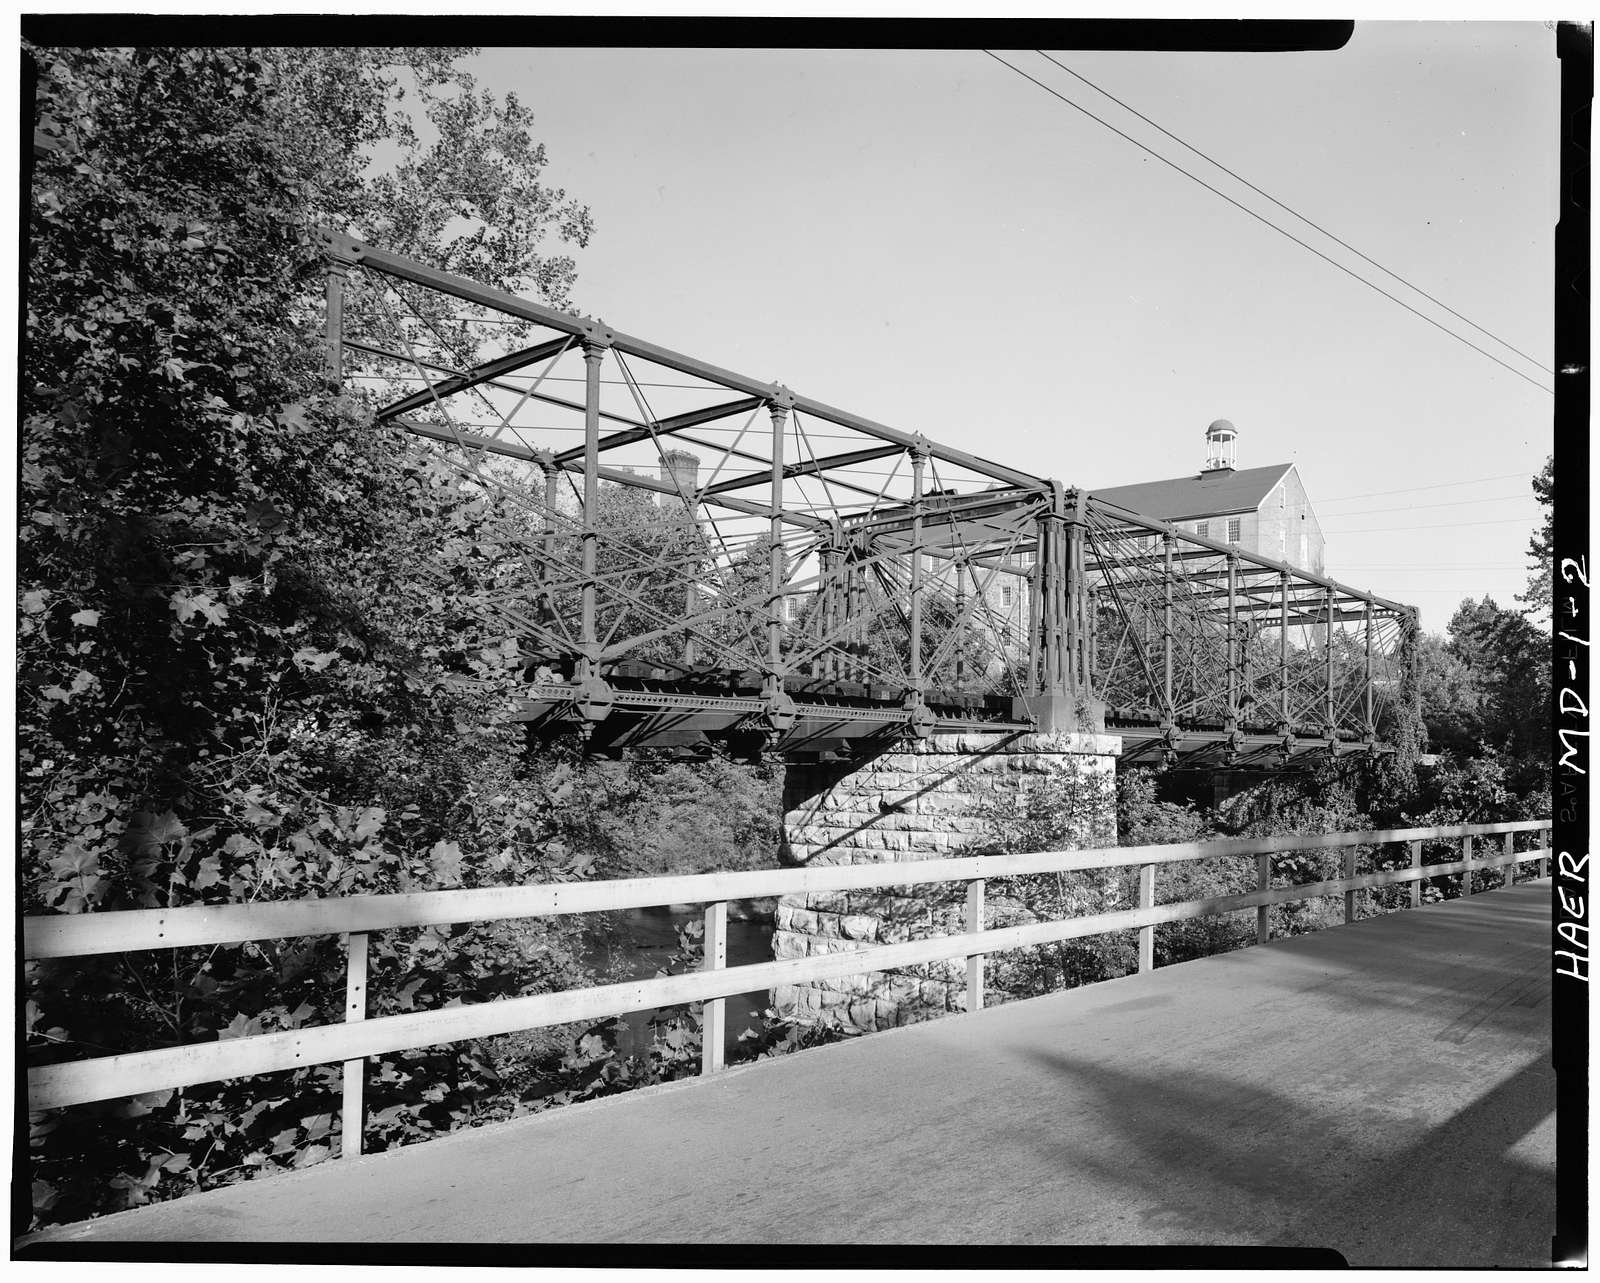 Baltimore & Ohio Railroad, Bollman Truss Bridge, Spanning Little Patuxent River, Savage, Howard County, MD